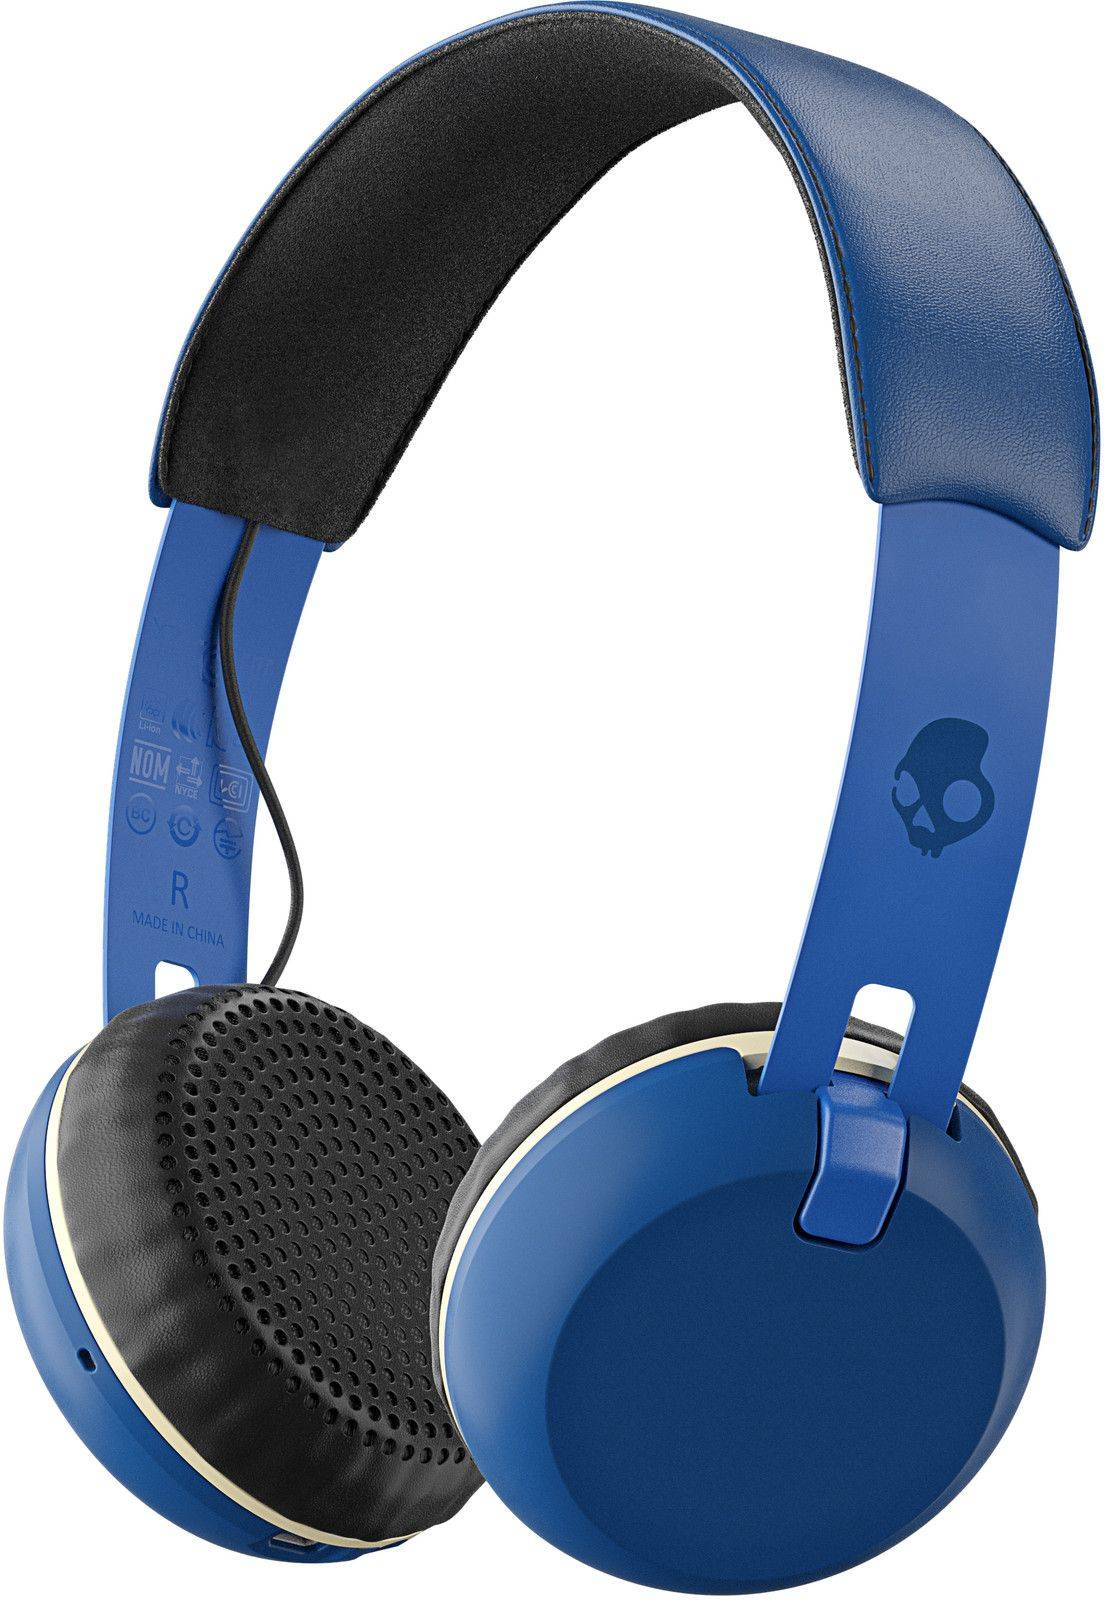 Skullcandy Grind Wireless - Musta/ruskea